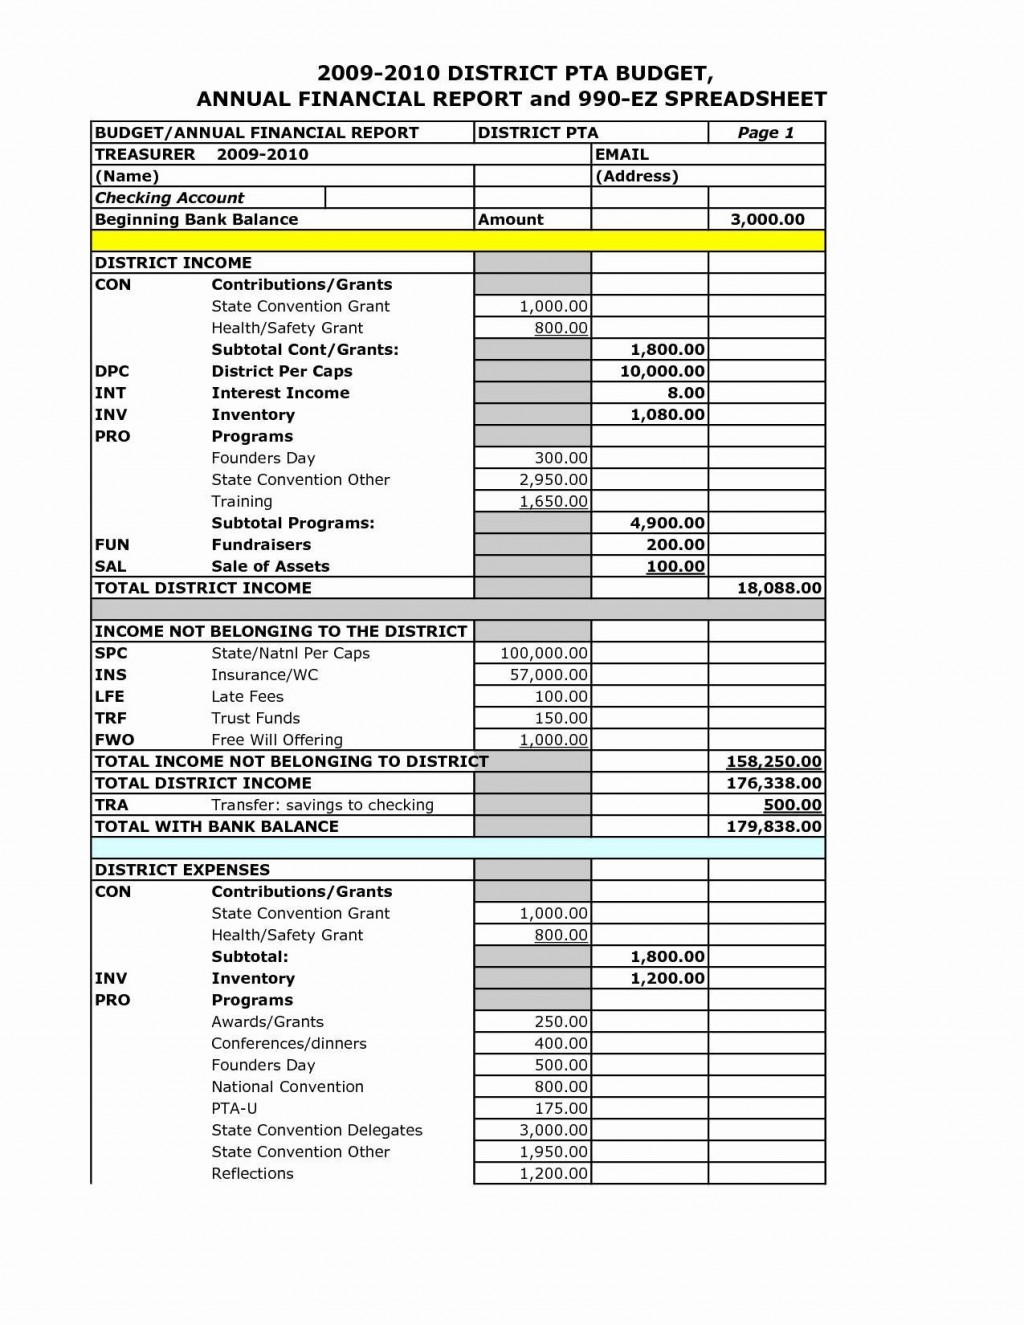 004 Remarkable Financial Statement Template Word High Def  Busines PersonalLarge